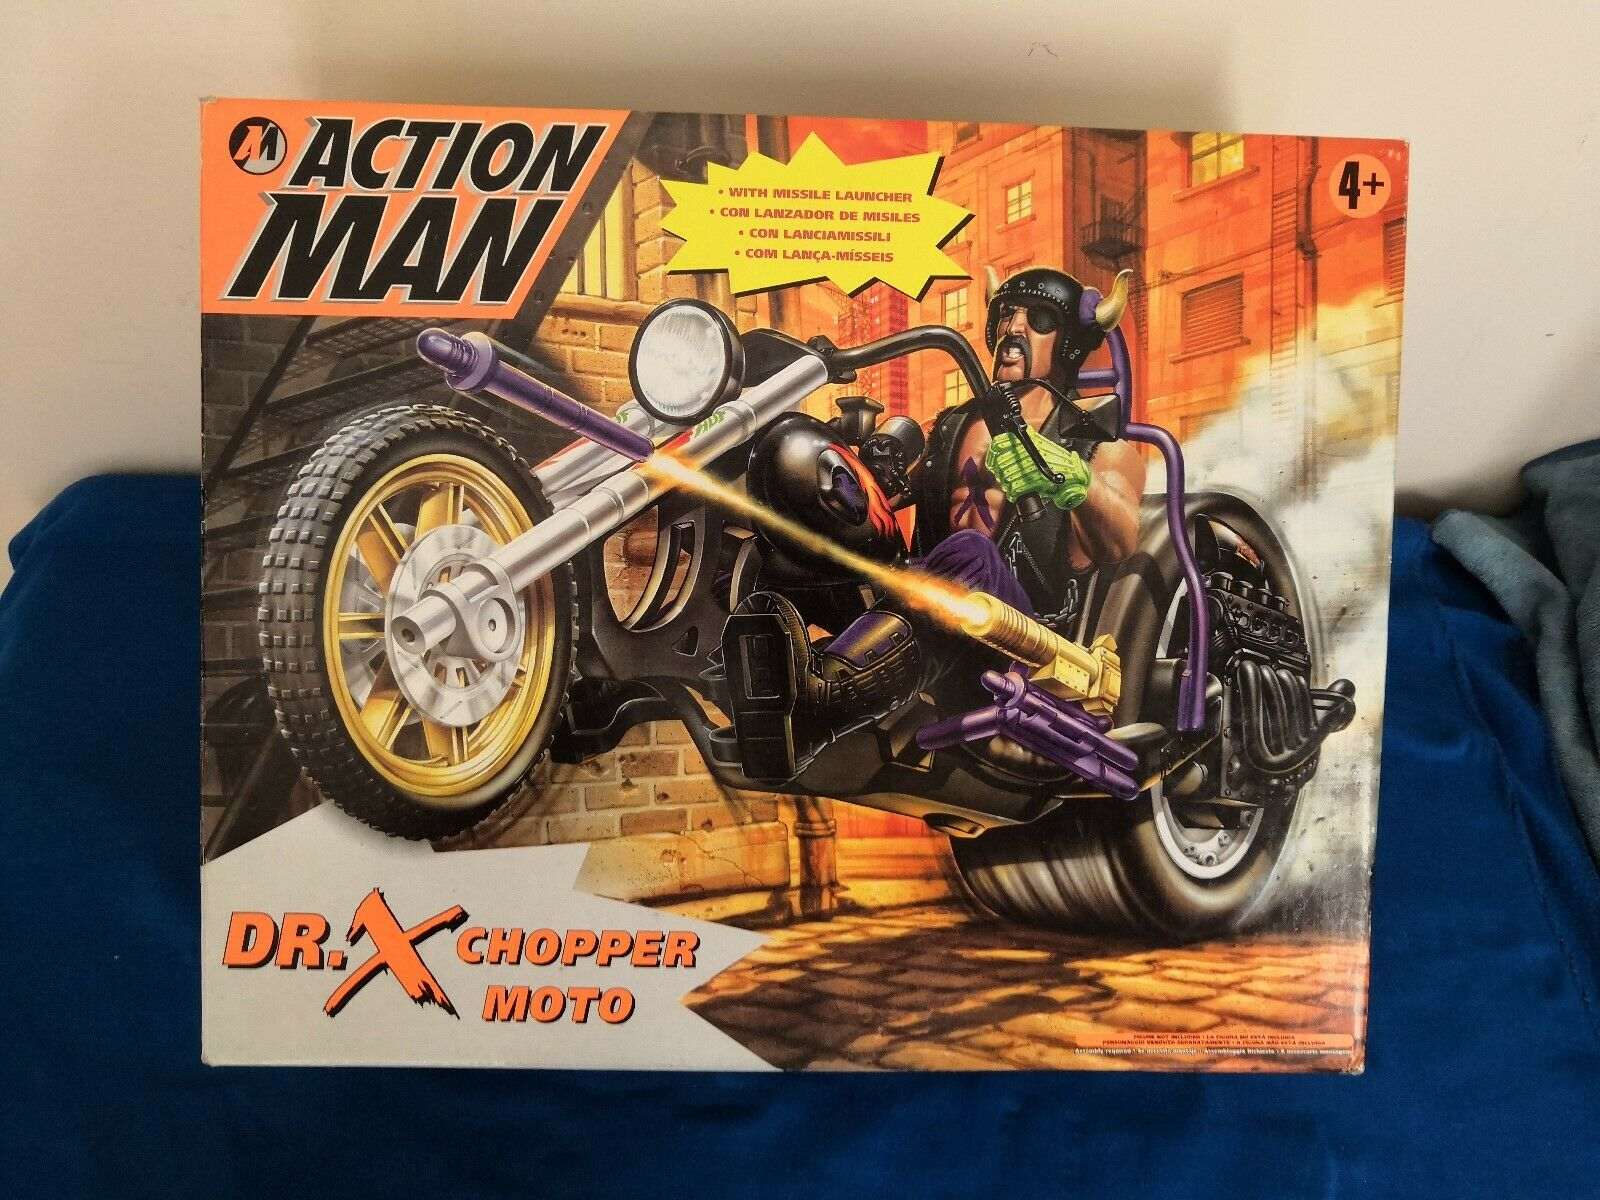 ACTION MAN CHOPPER MOTO DR X & MISSILE LAUNCHER HASBRO VINTAGE YEAR 1997